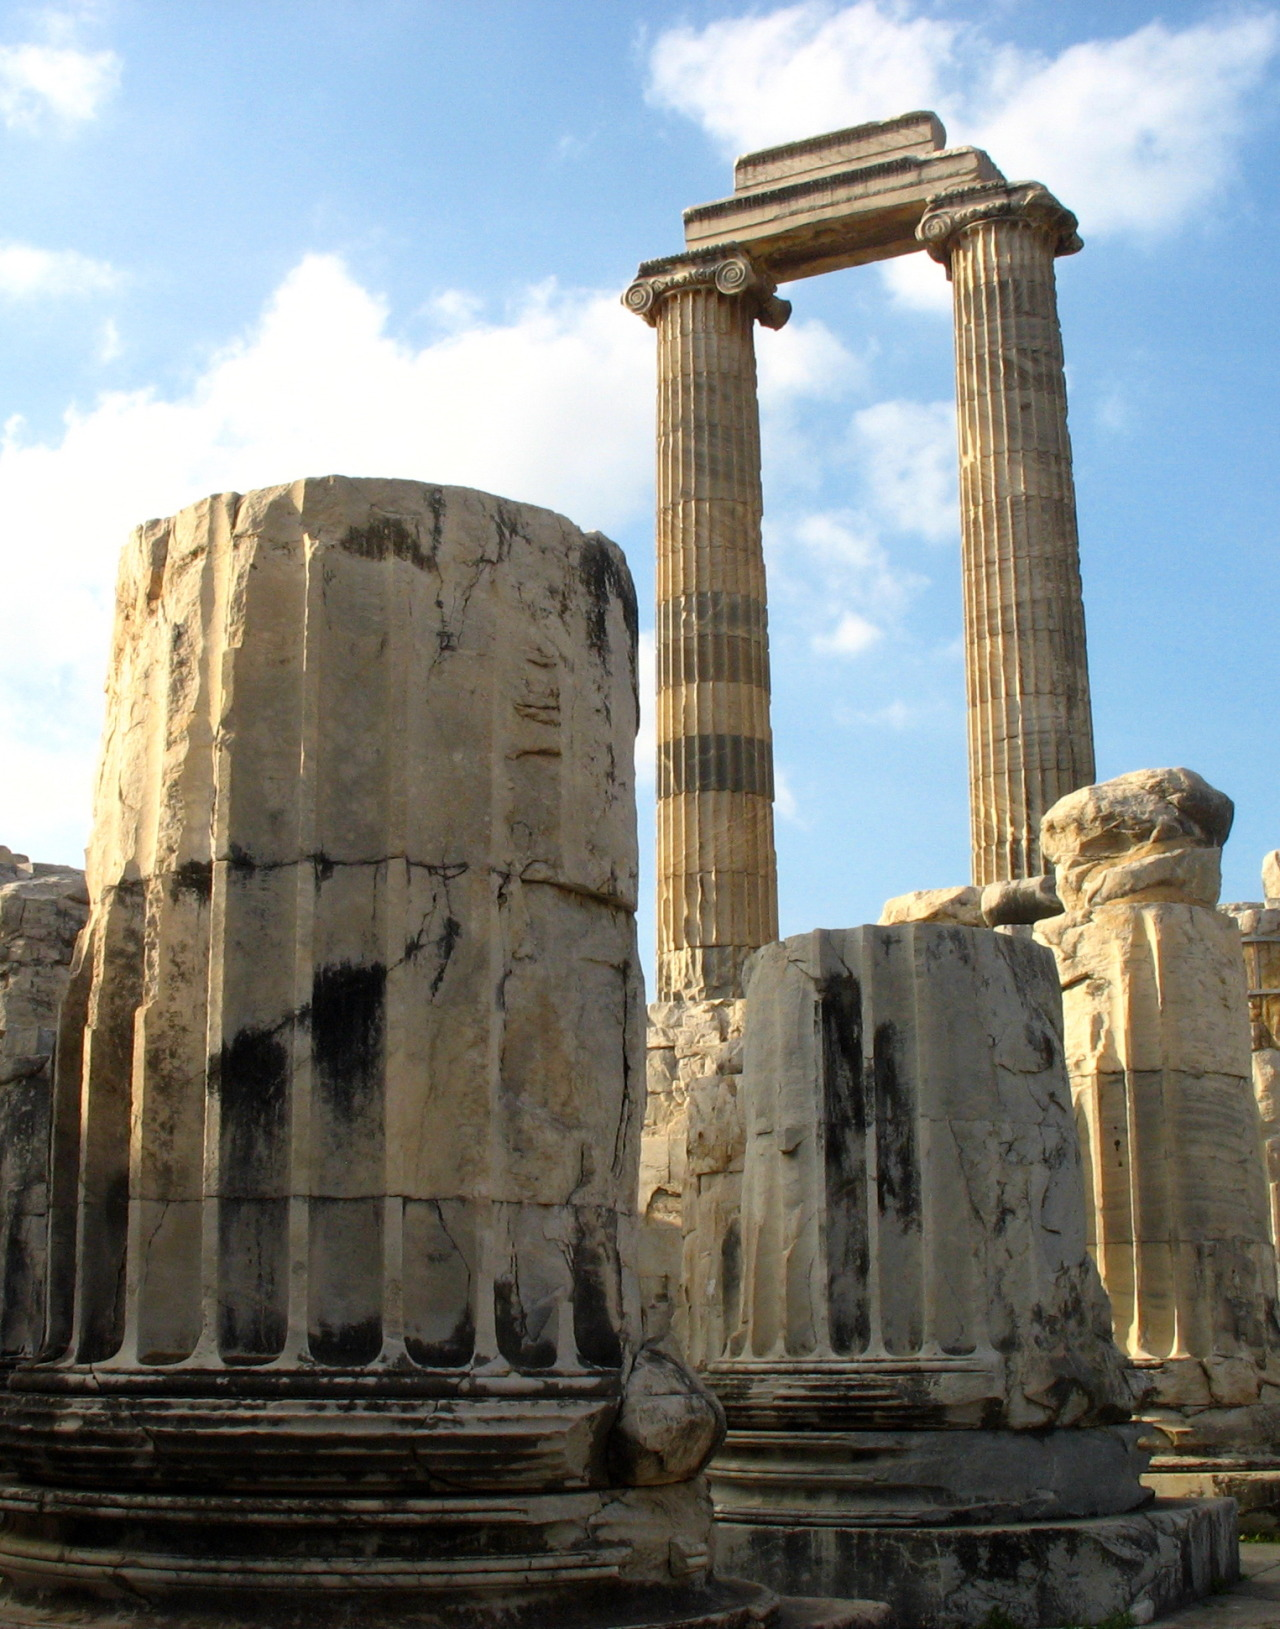 Temple of Apollo in the ancient roman city of Didyma, Turkey